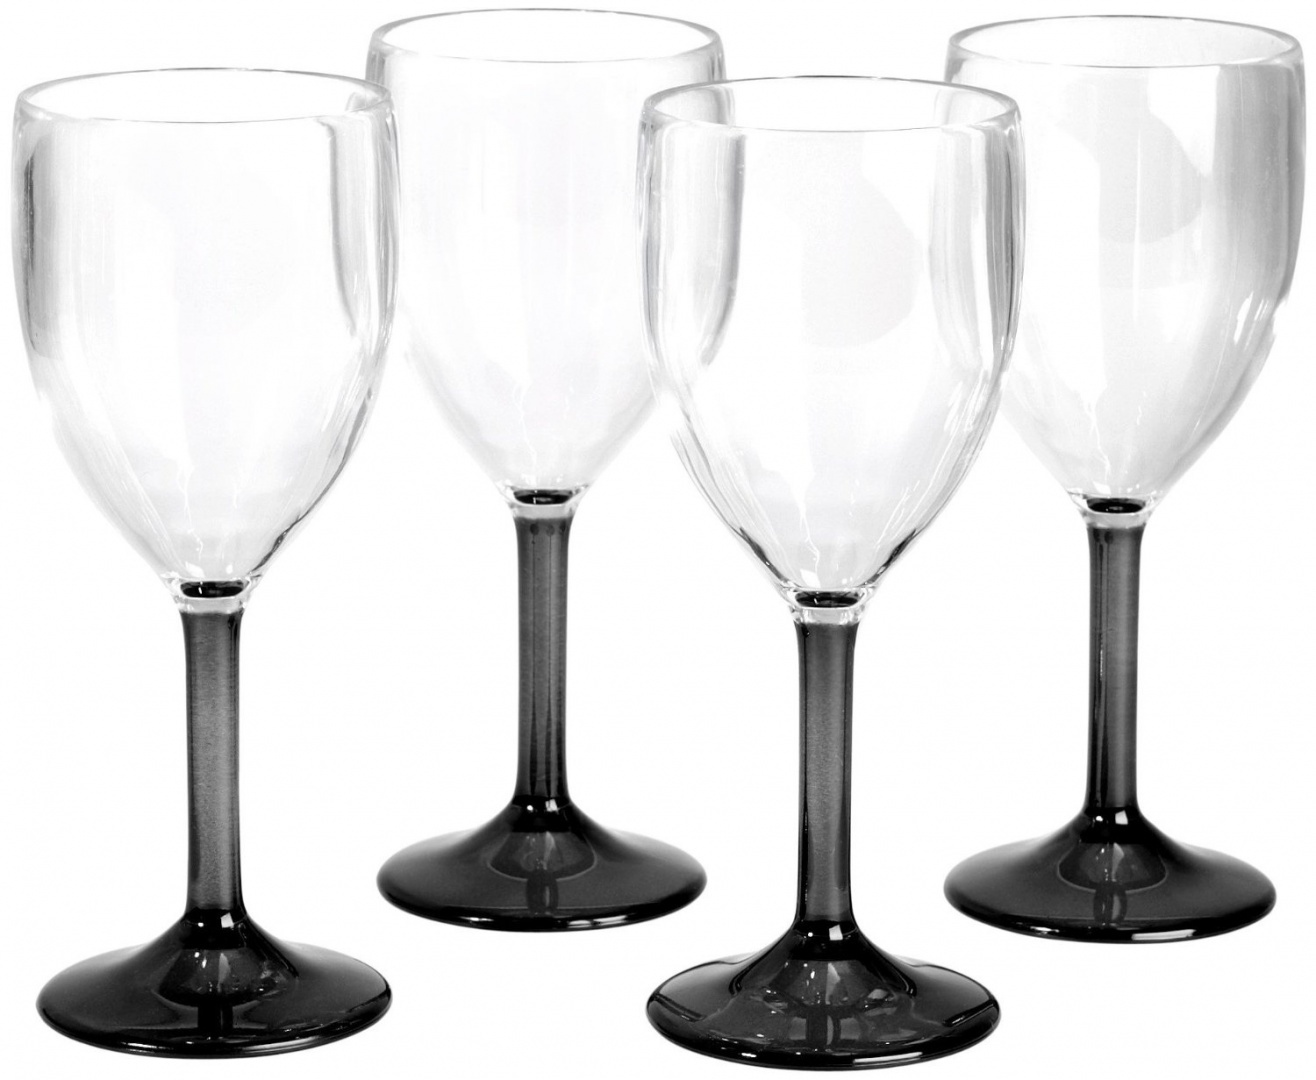 Wine Glasses With Black Stems Flamefield Acrylic Wine Glasses Black Stem 10oz 290ml